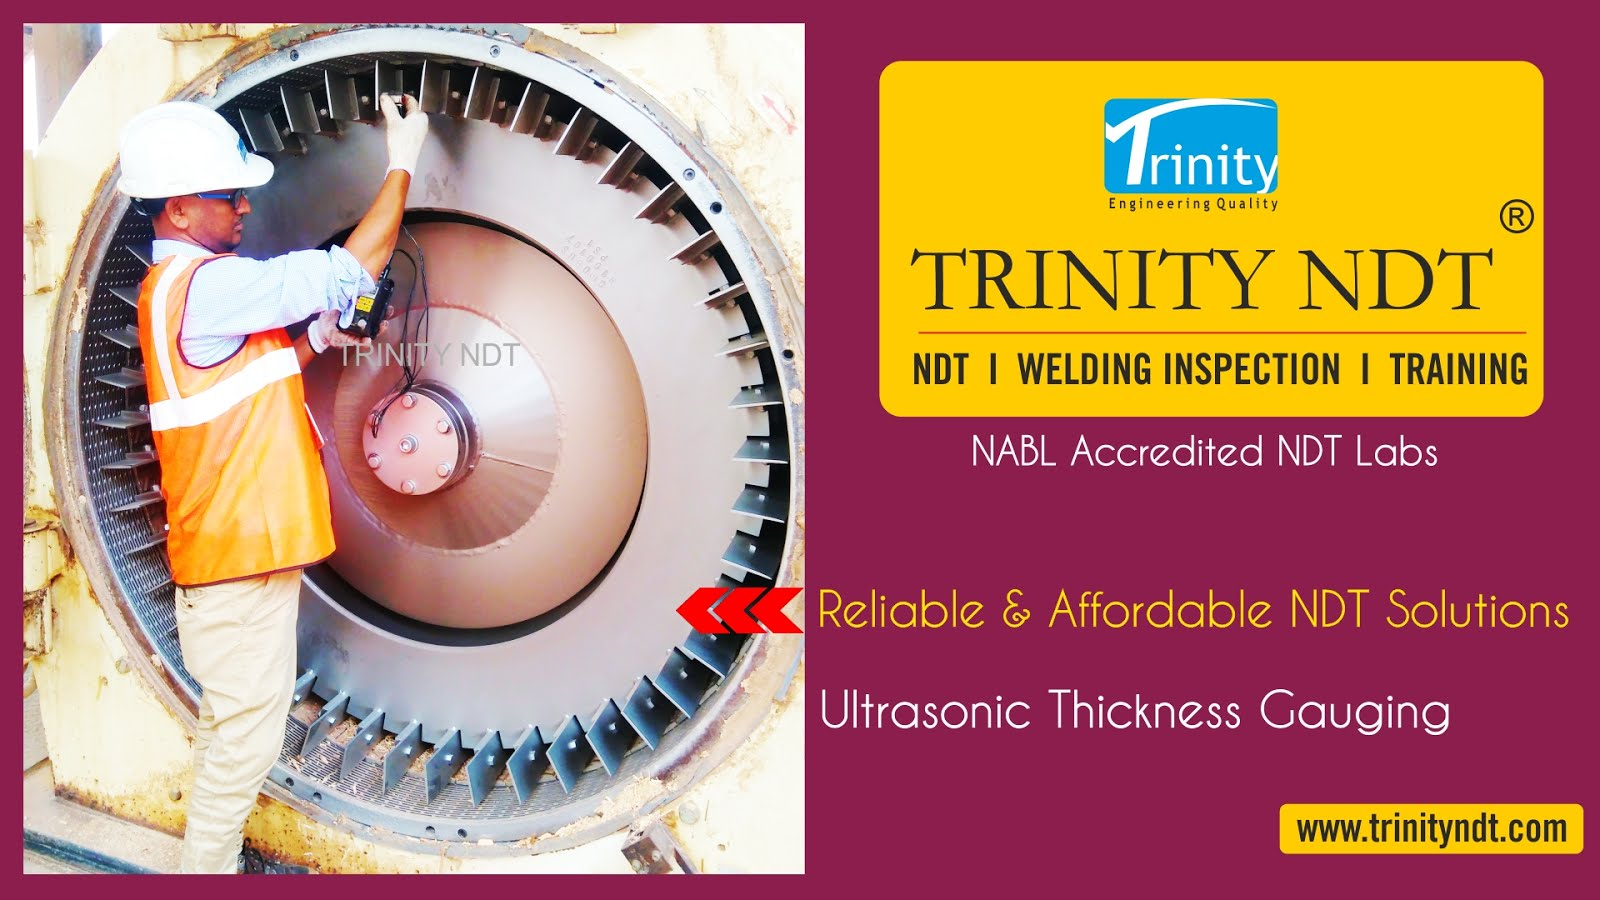 Ultrasonic Thickness Gauging Ultrasonic Inspection NDT labs- Trinity NDT